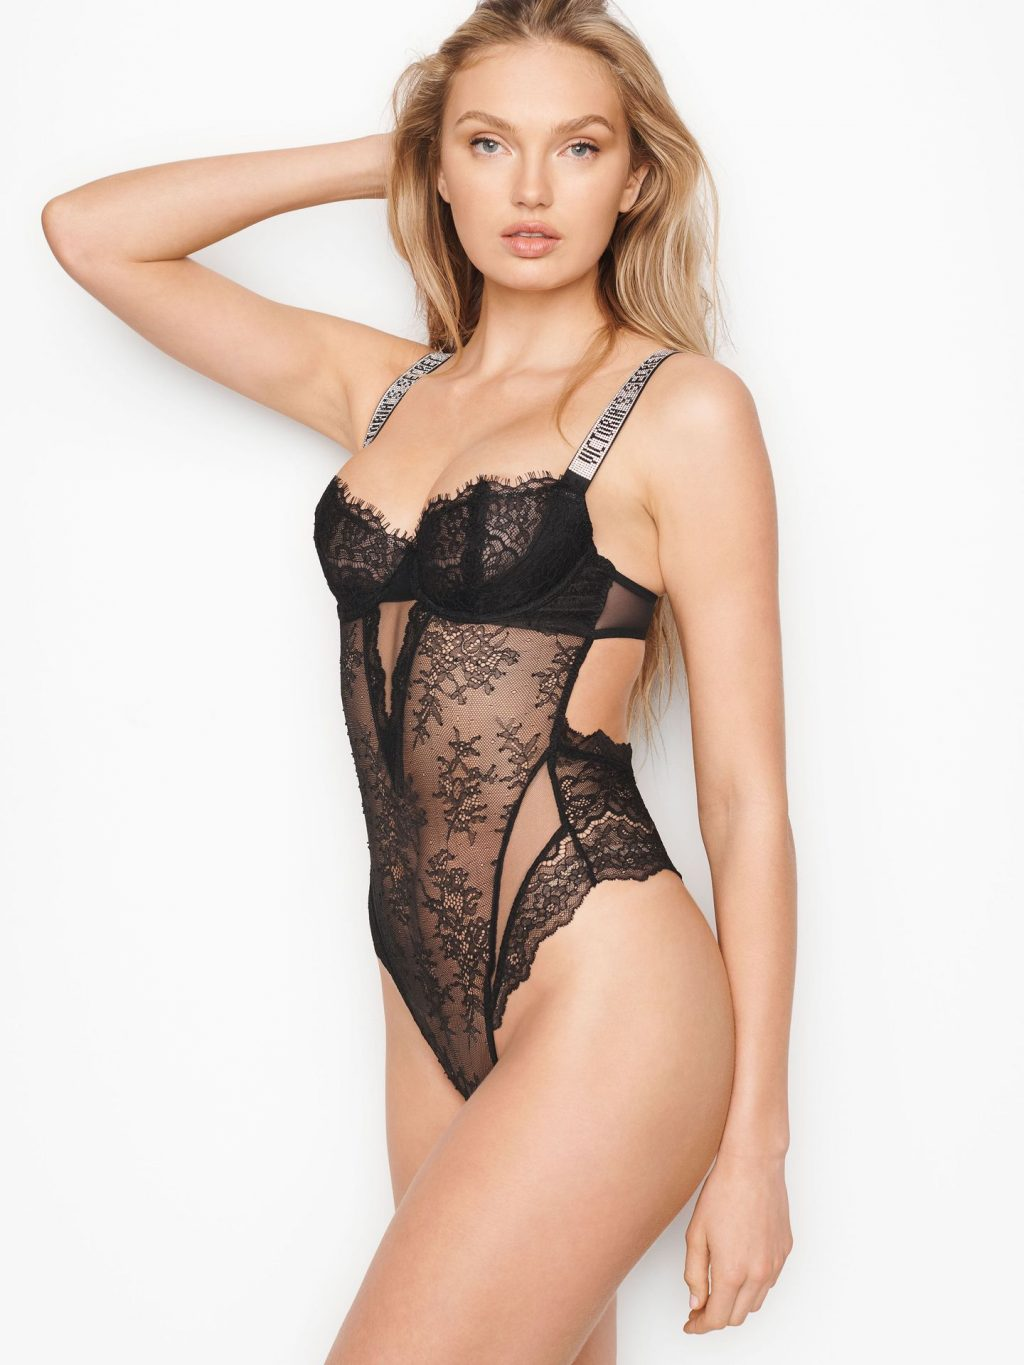 Romee Strijd Shows Off Her Body for Victoria's Secret Campaign (7 Photos)